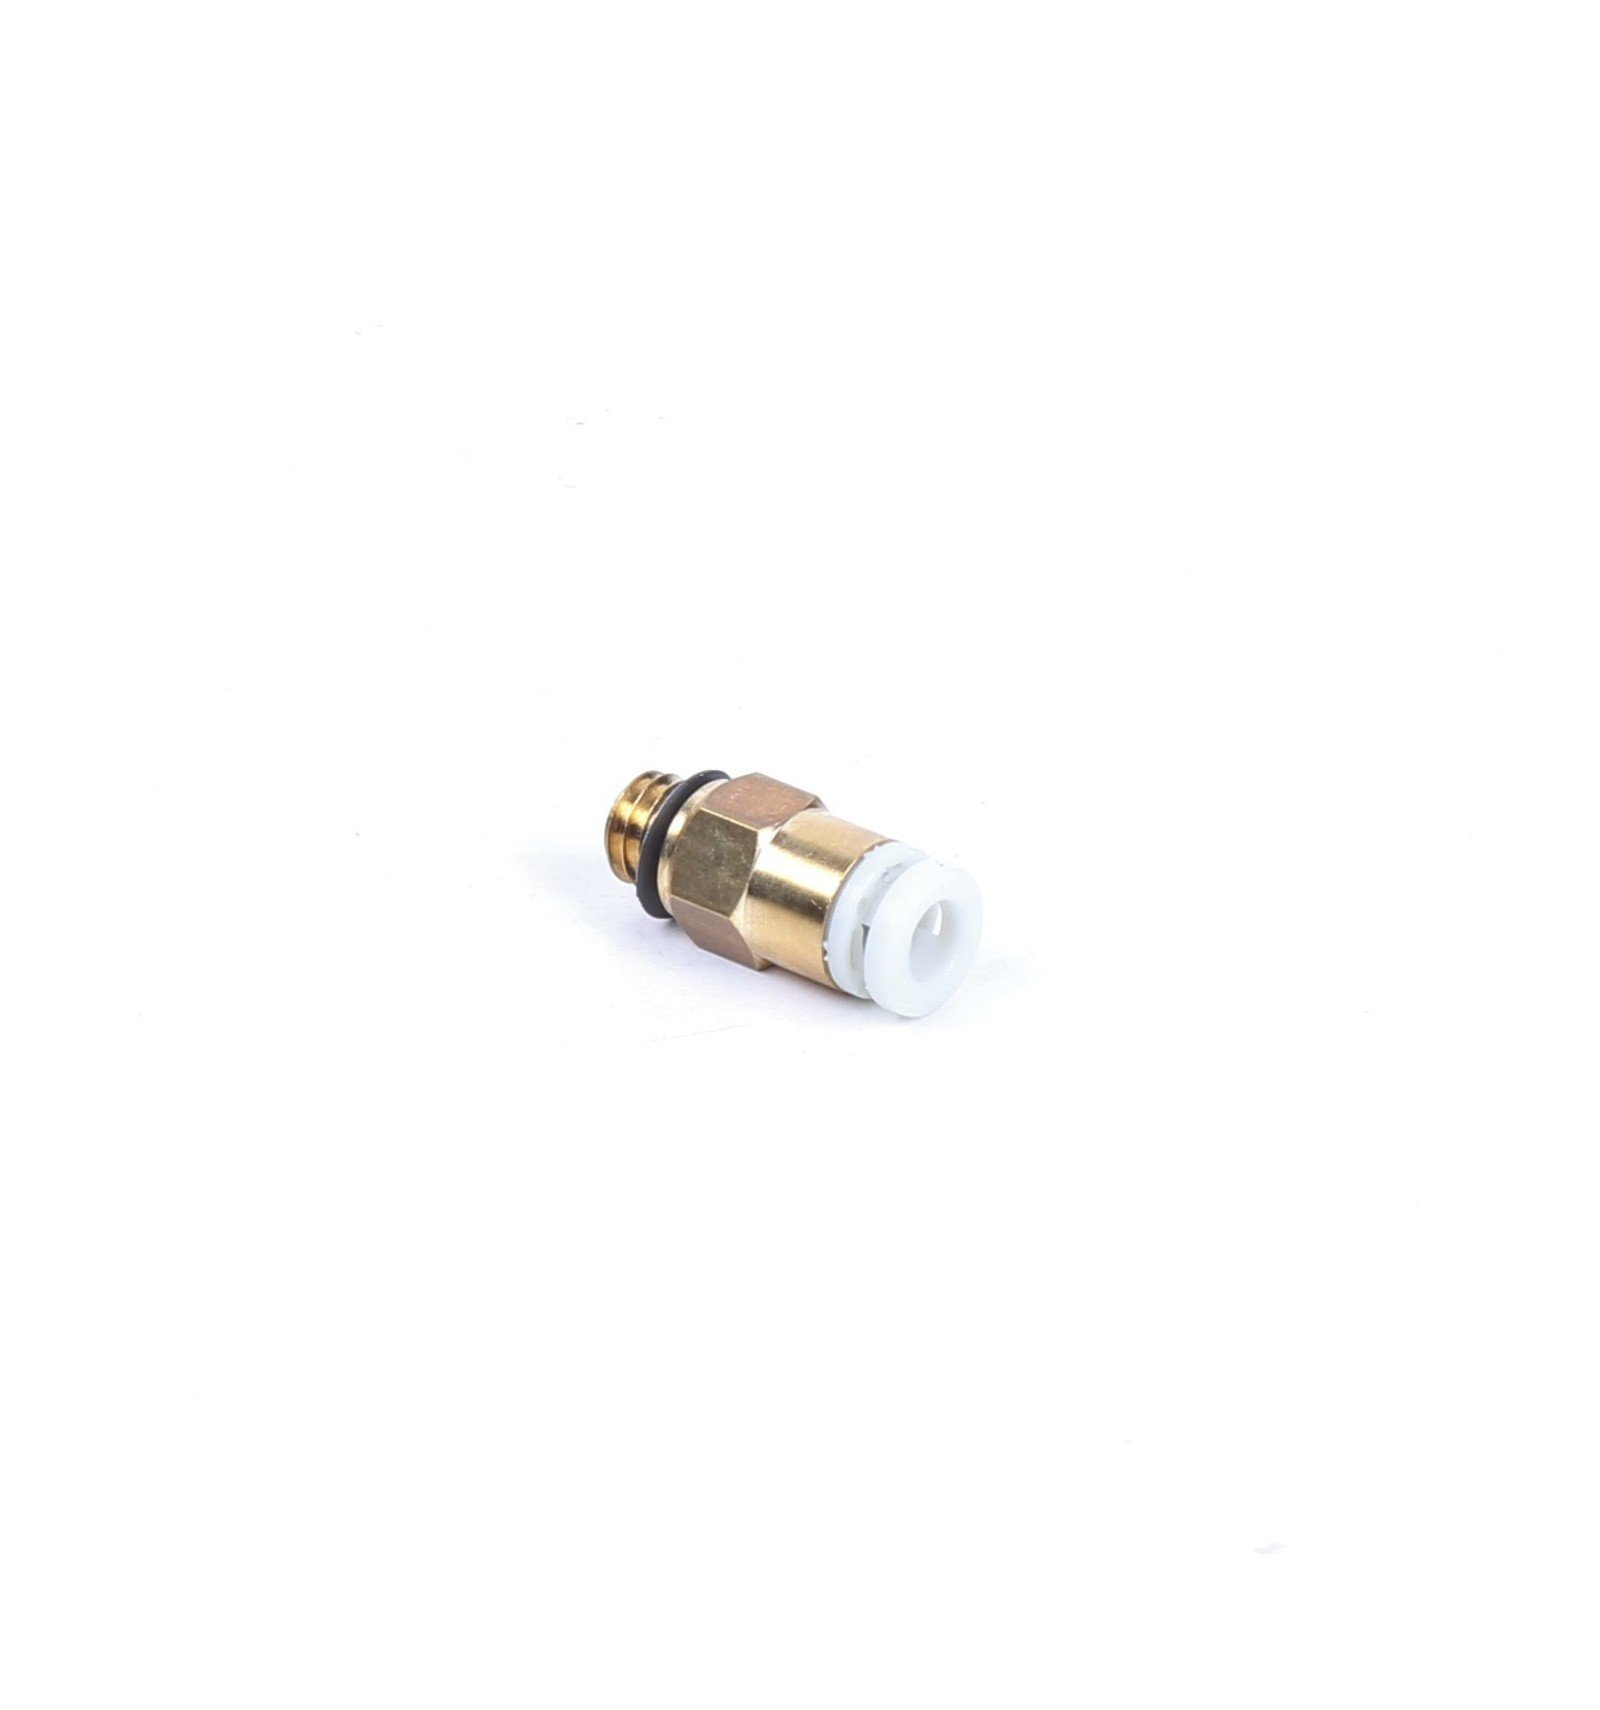 Replacement Bowden Connector for the CR-10/S | PC4 M6